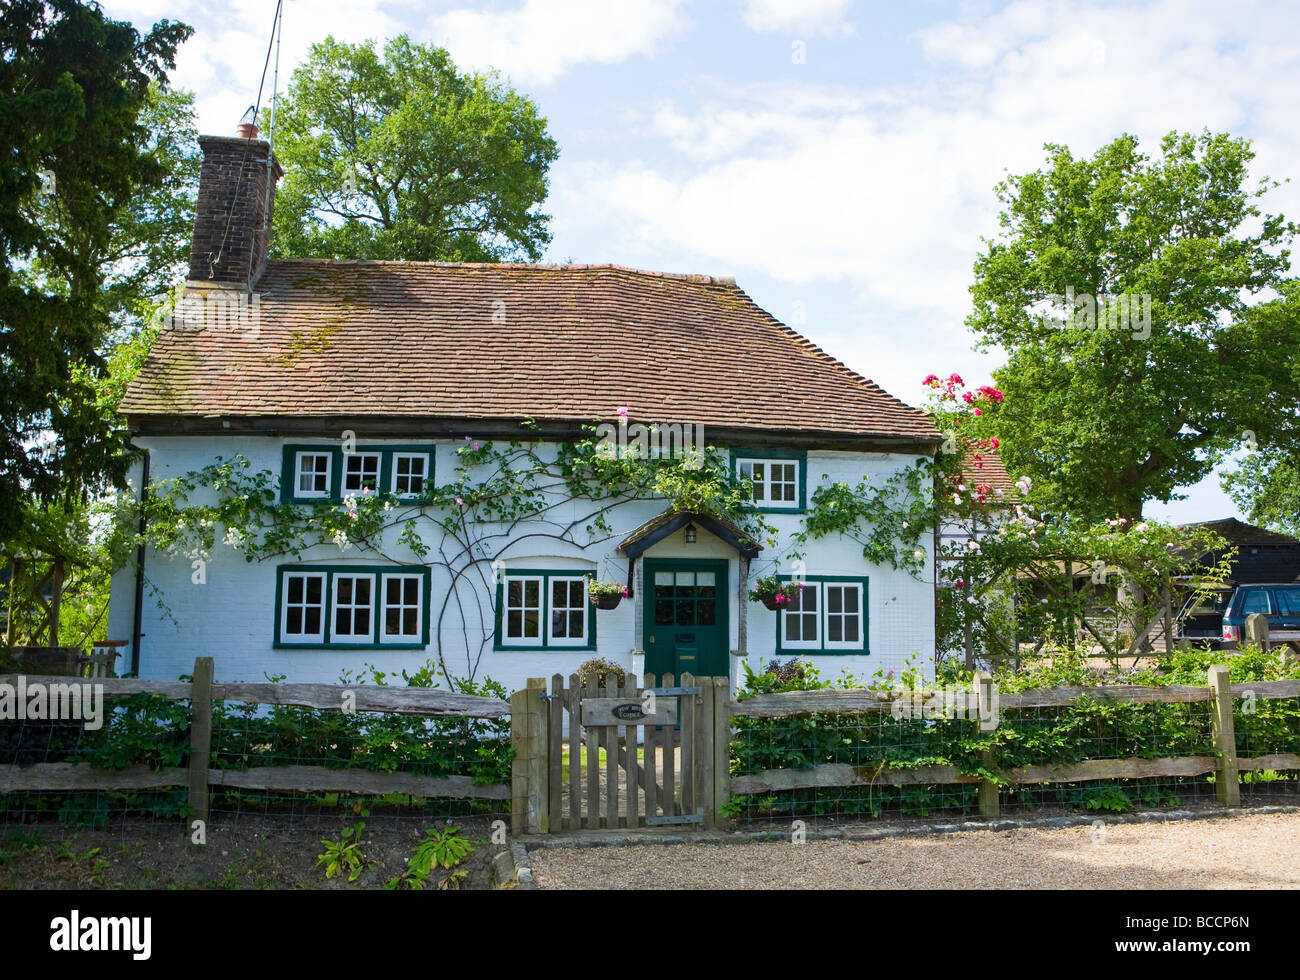 Traditional whitewashed English country cottage West Sussex UK - Stock Image